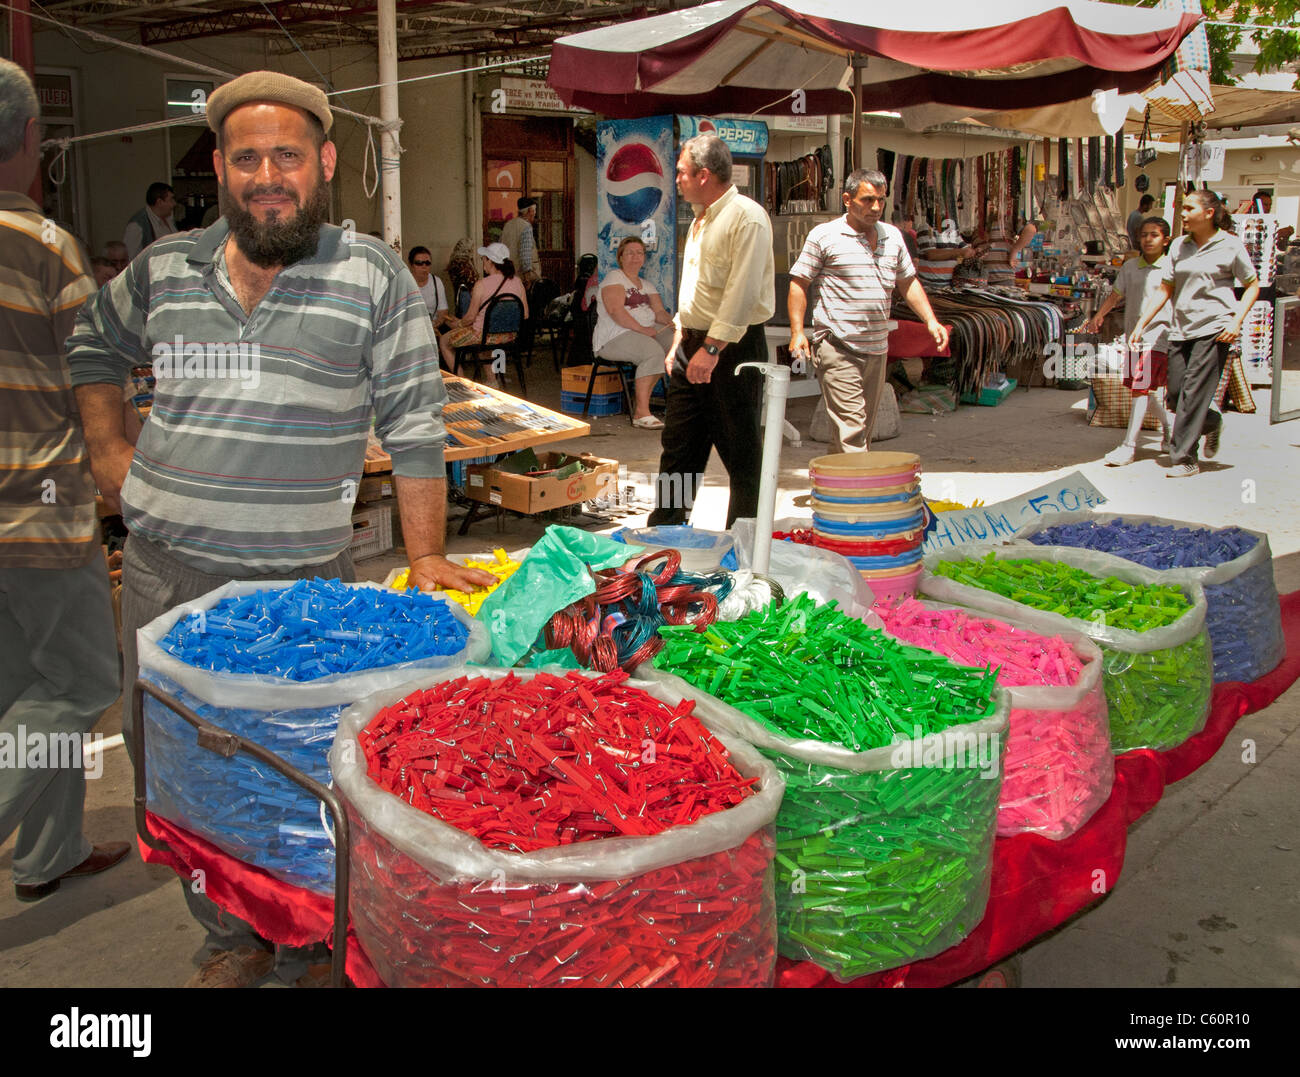 Ayavalik clip nippers Market Bazaar Turkey Turkish - Stock Image